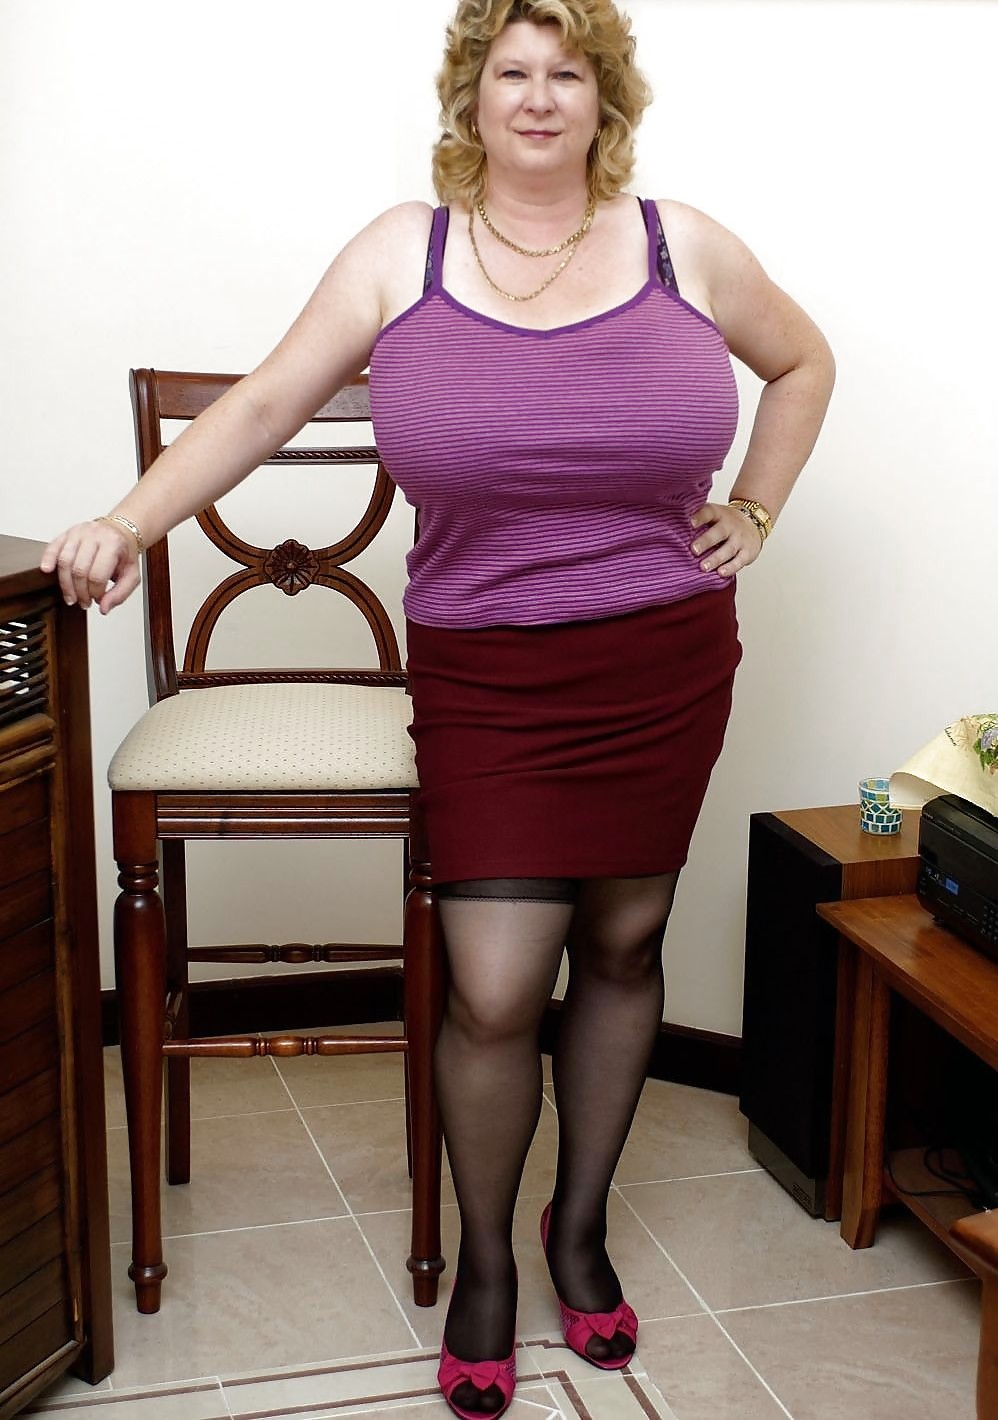 Muy Tetudas see and save as matures grannies milfs gilfs dressed up i